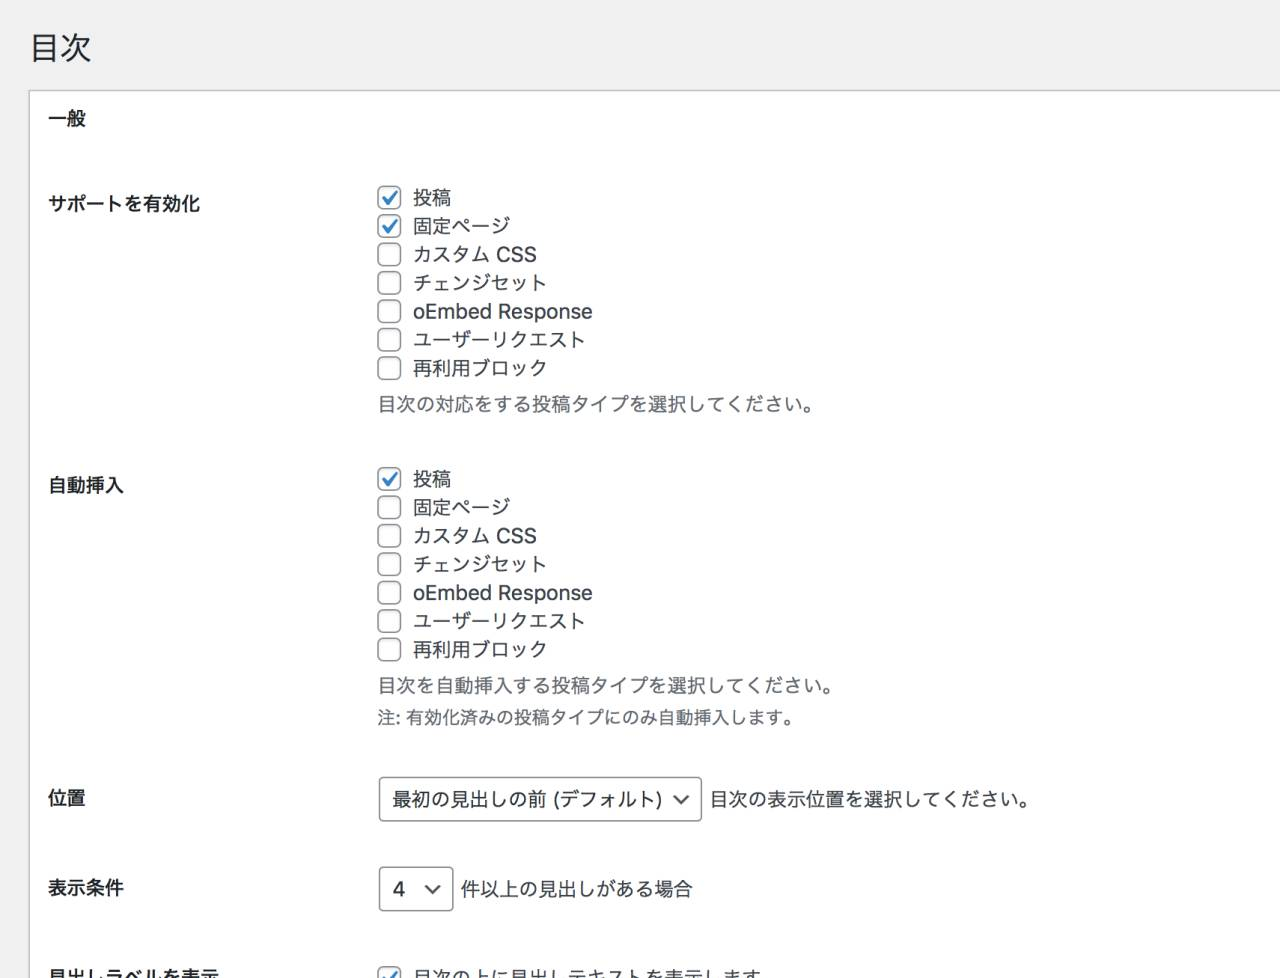 Easy Table of Contentsの設定方法